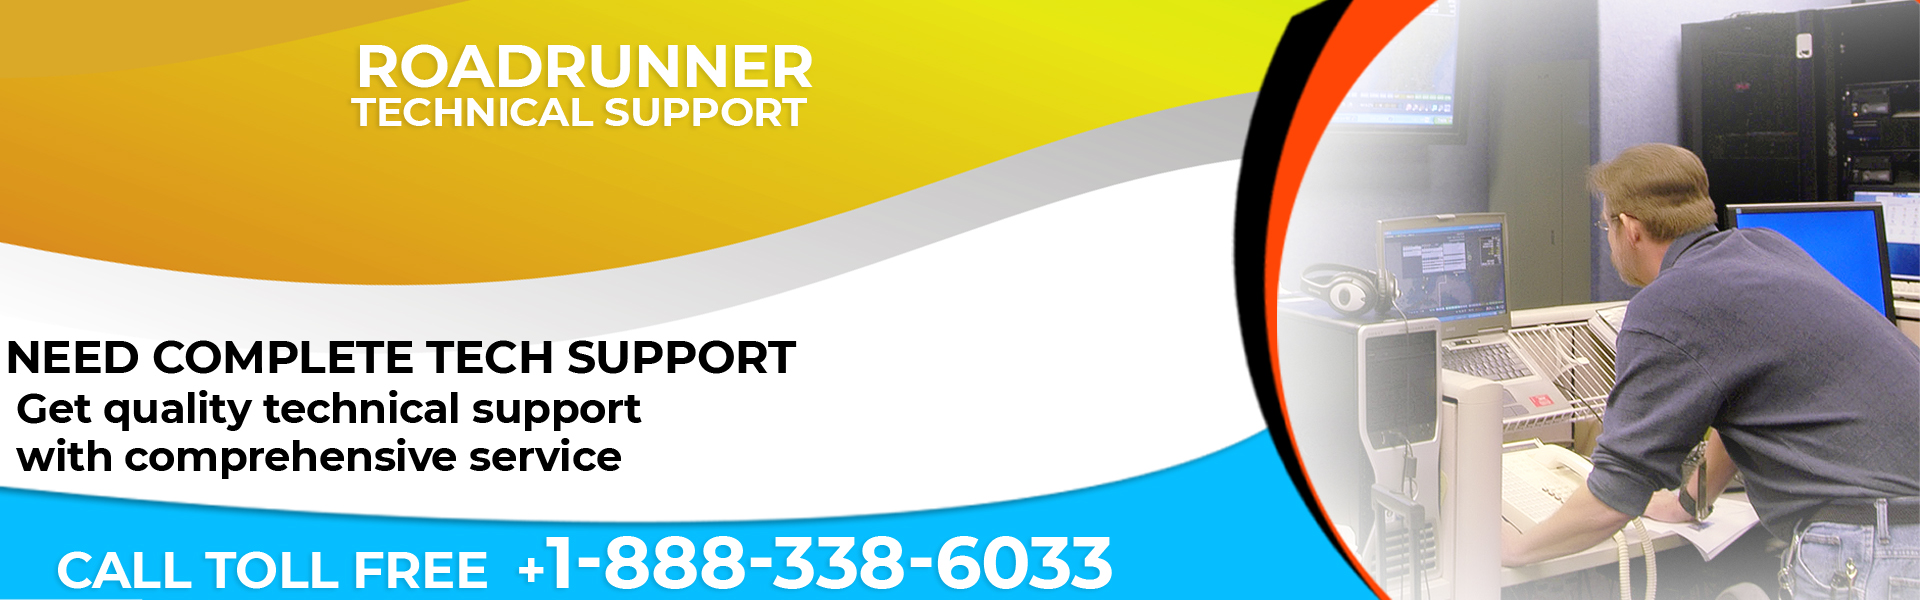 Roadrunner Tech Support Phone Number